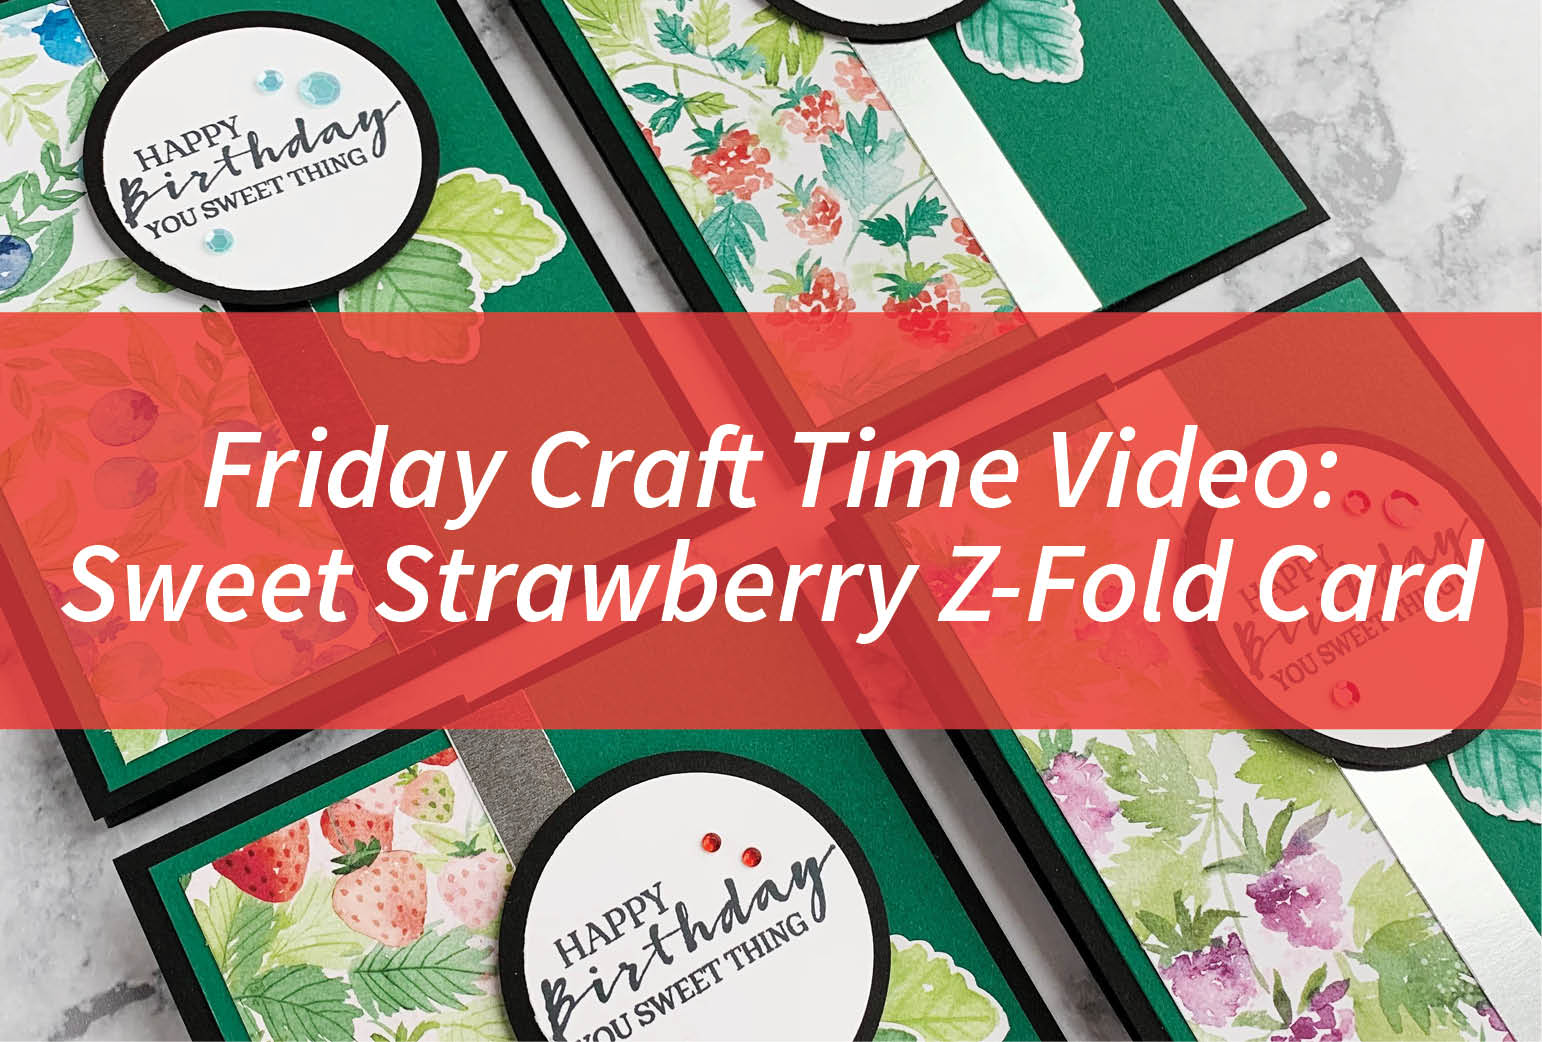 Friday Craft Time Video: Sweet Strawberry Z-Fold Card